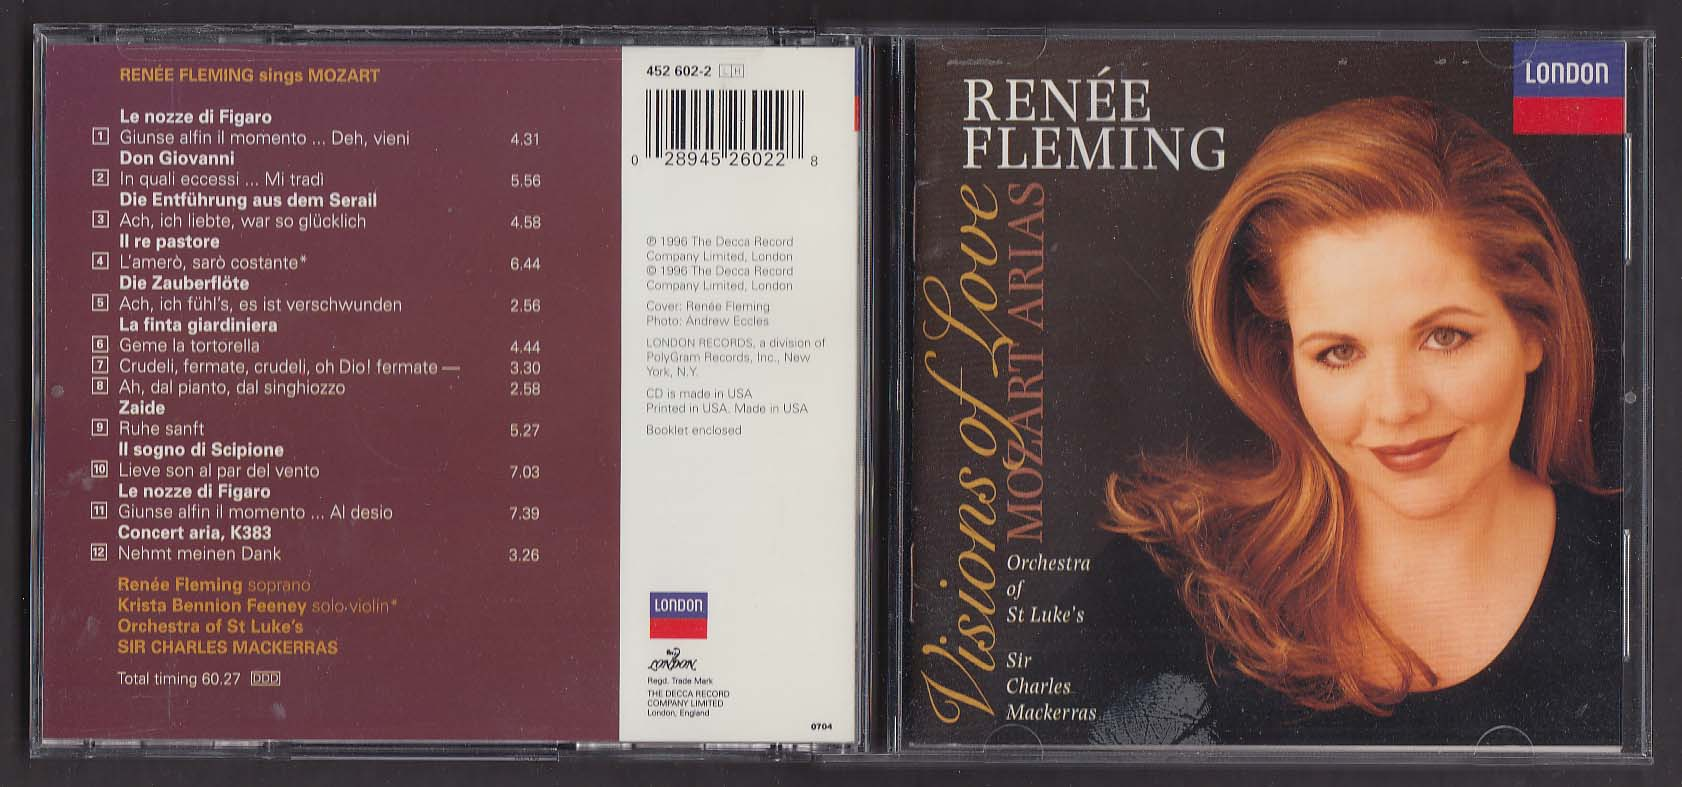 Image for Renee Fleming: Visions of Love Mozart Arias London 452 602-2 CD 1996